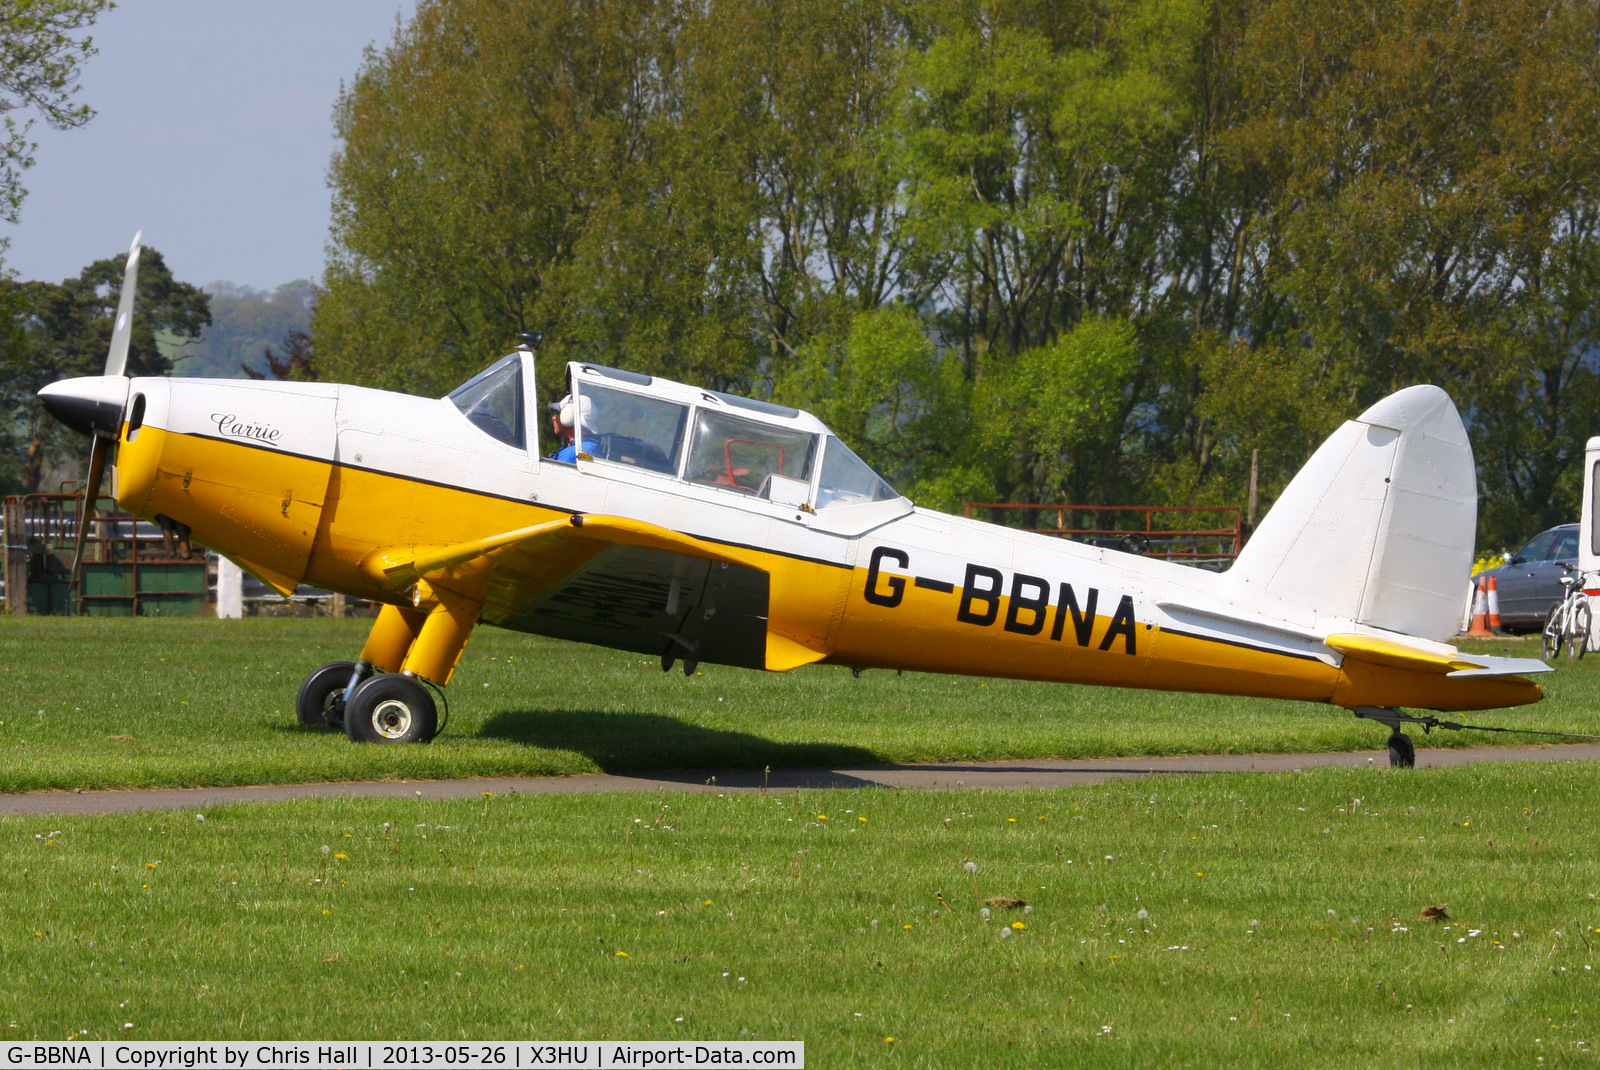 G-BBNA, 1953 De Havilland DHC-1 Chipmunk 22 (Lycoming) C/N C1/0491, Coventry Gliding Club, Husbands Bosworth